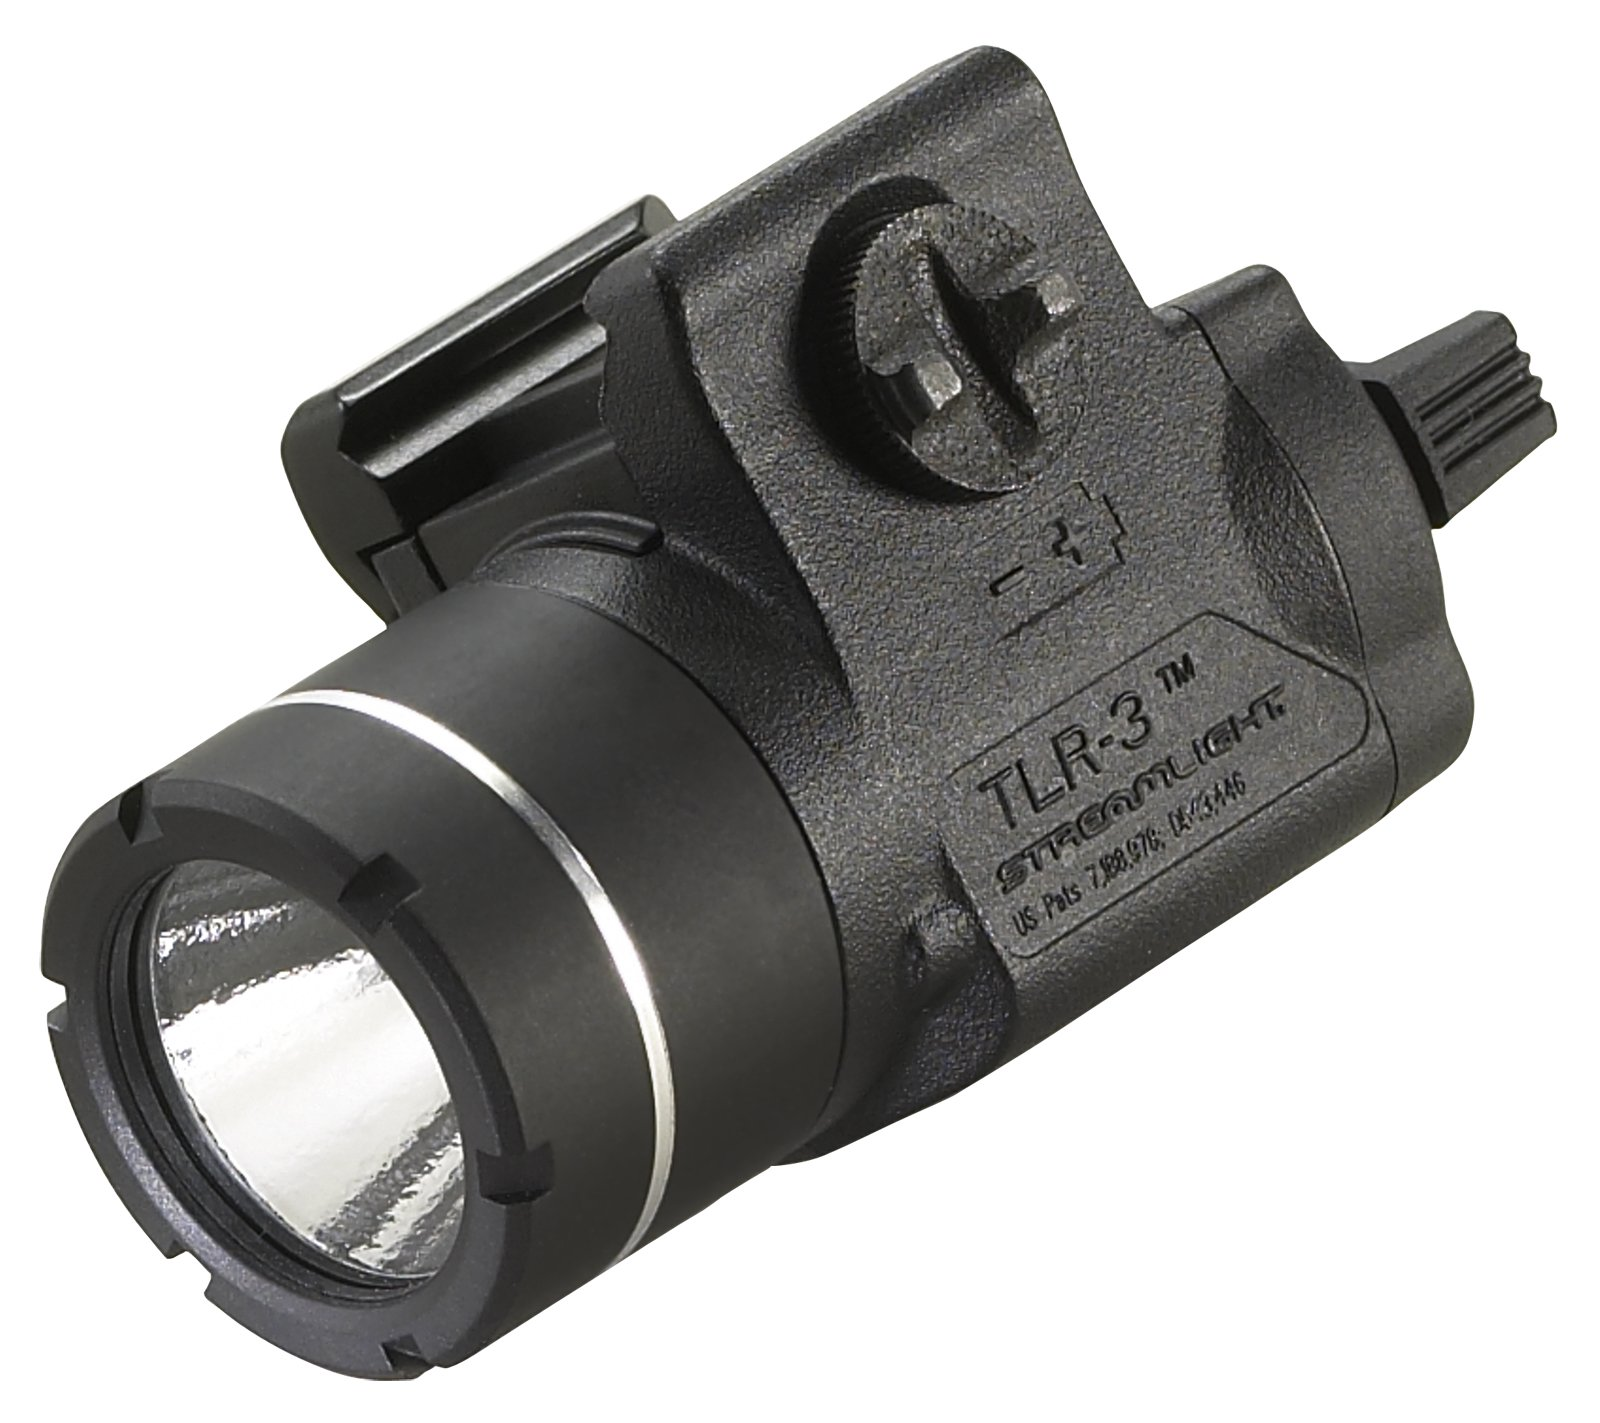 Streamlight 69220 TLR-3 Weapon Mounted Tactical Light with Rail Locating Keys - 800 Lumens